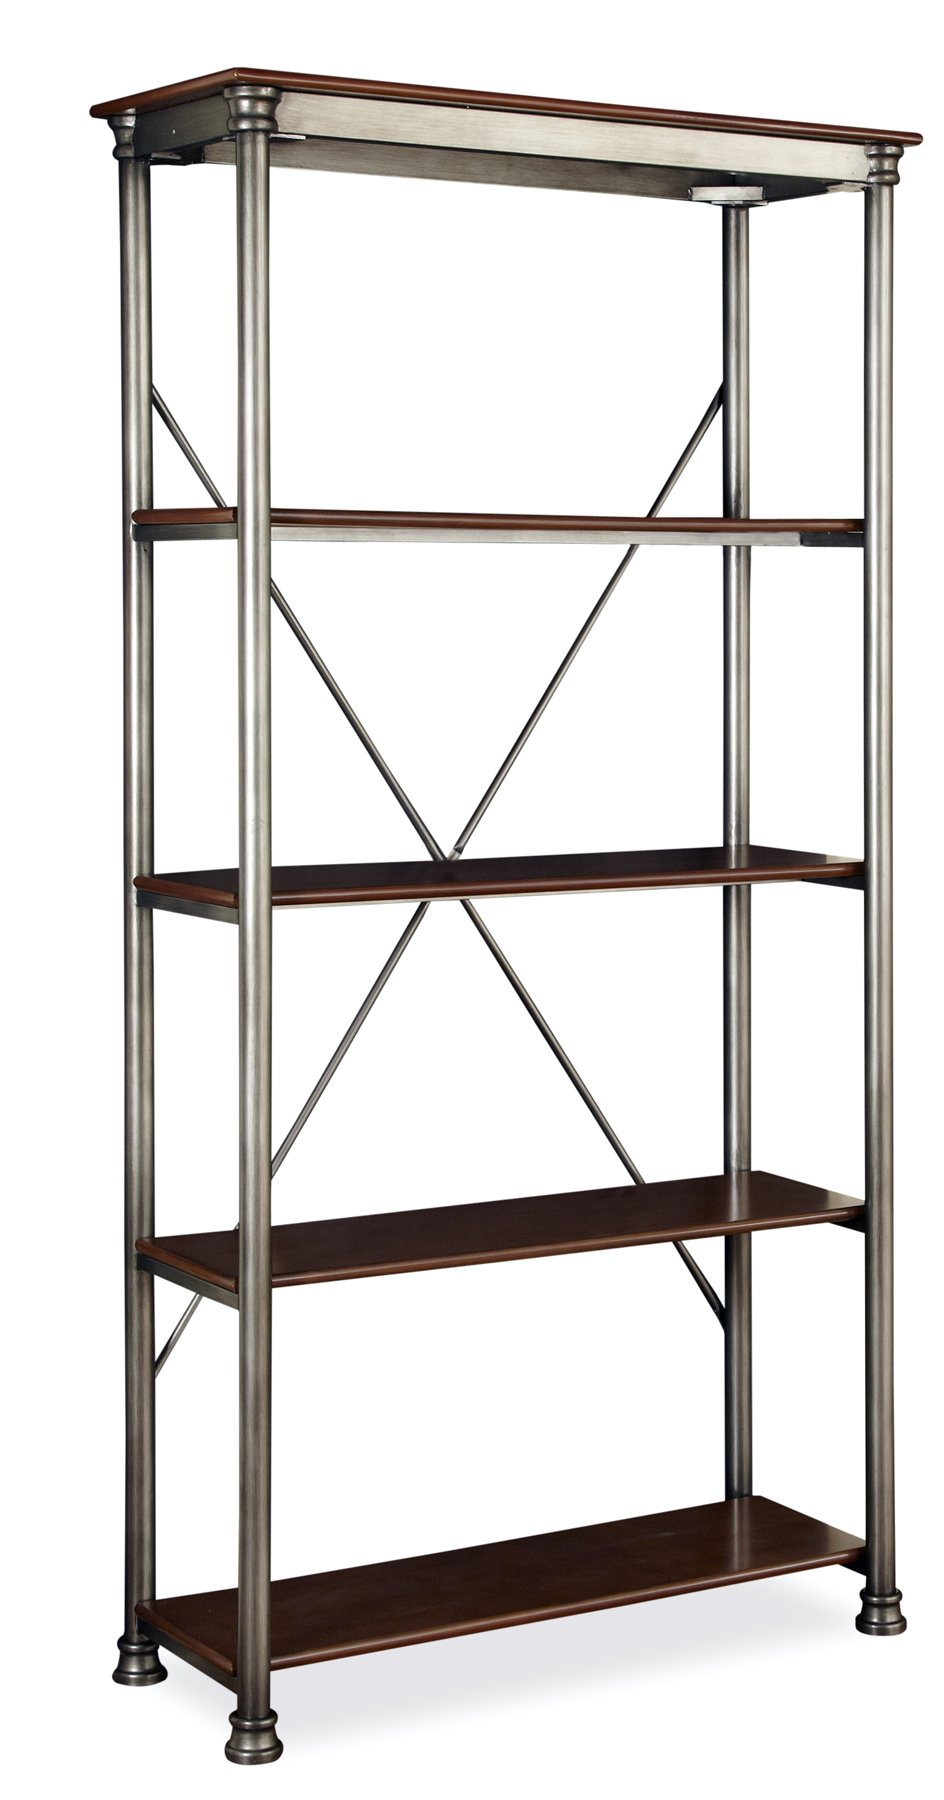 Home Styles 5061-76 The Orleans 5-Tier Multi-function Vintage Shelf by Home Styles